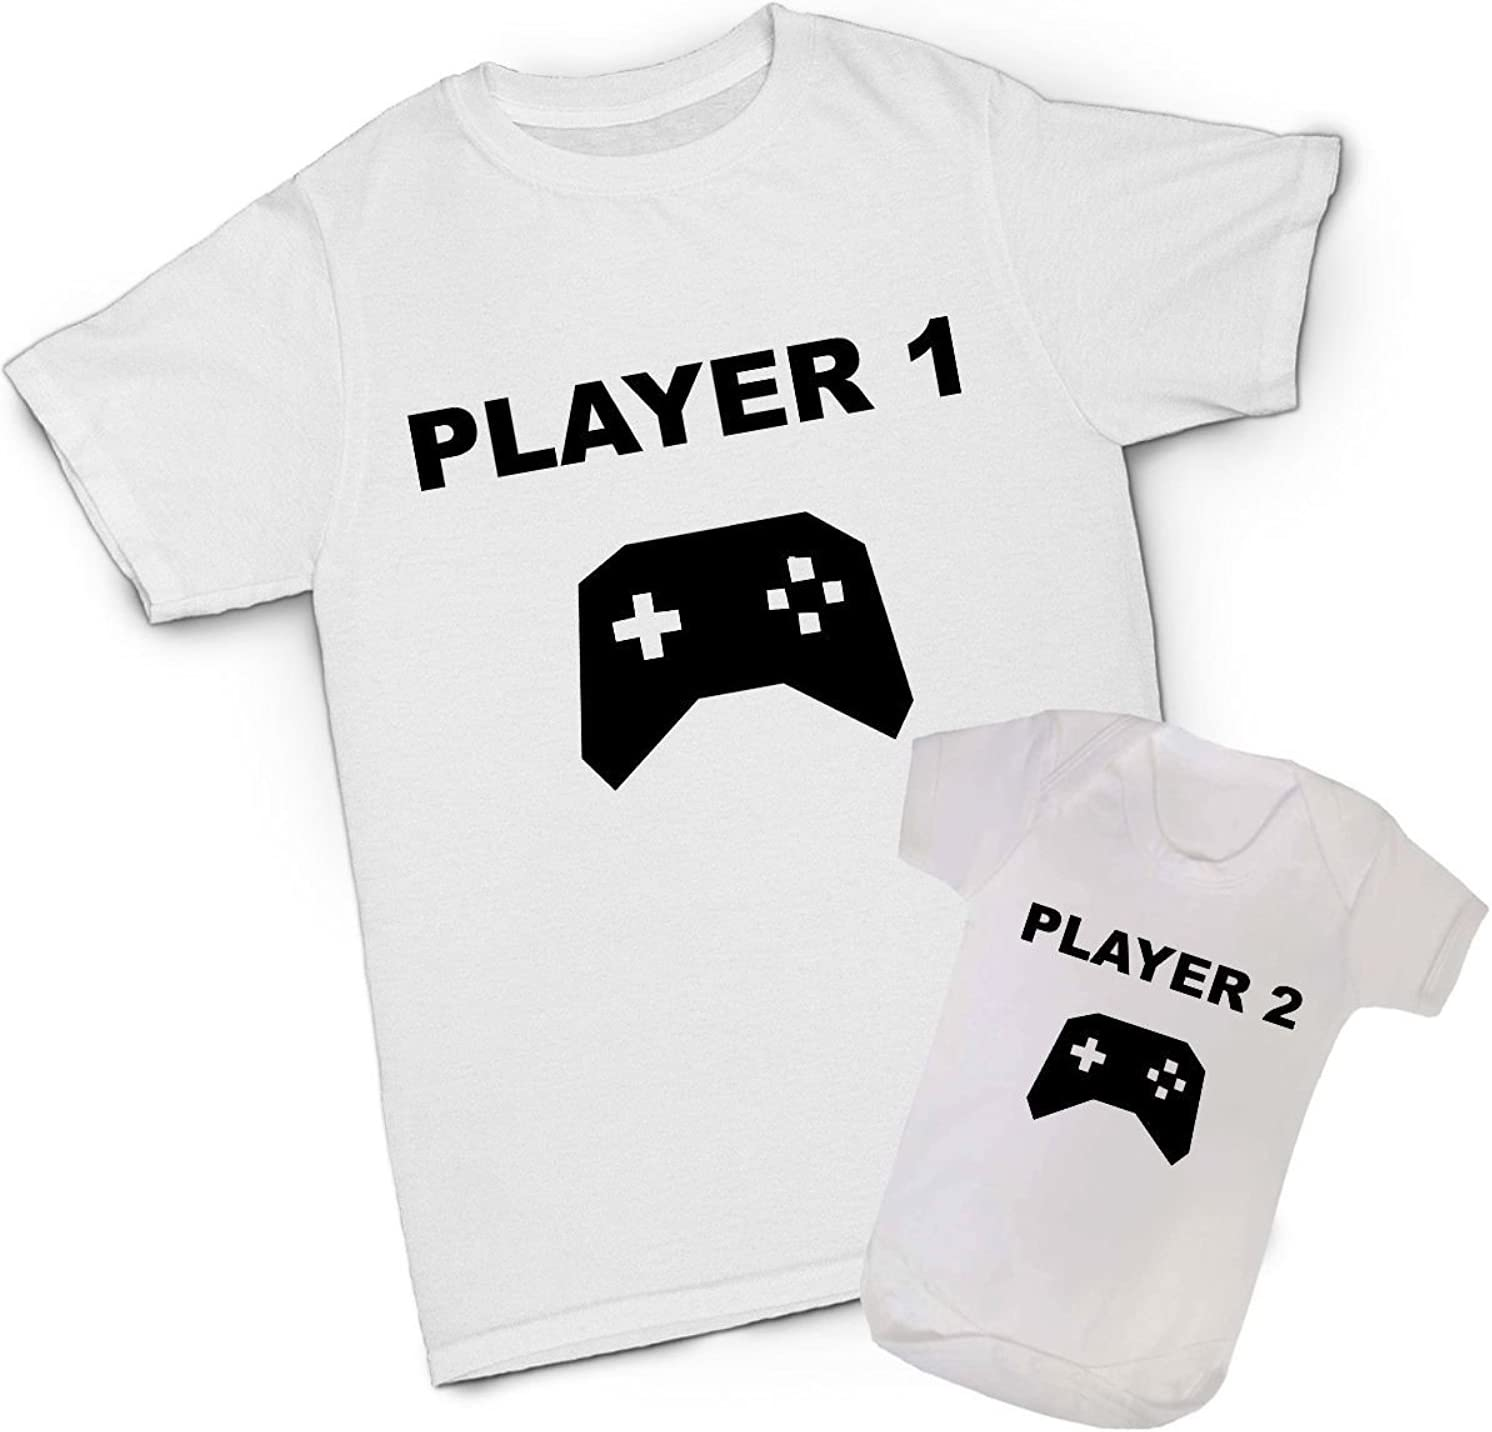 Player 1 Player 2 T-shirts Father Baby Gaming Shirts Daddy Son Matching Shirts